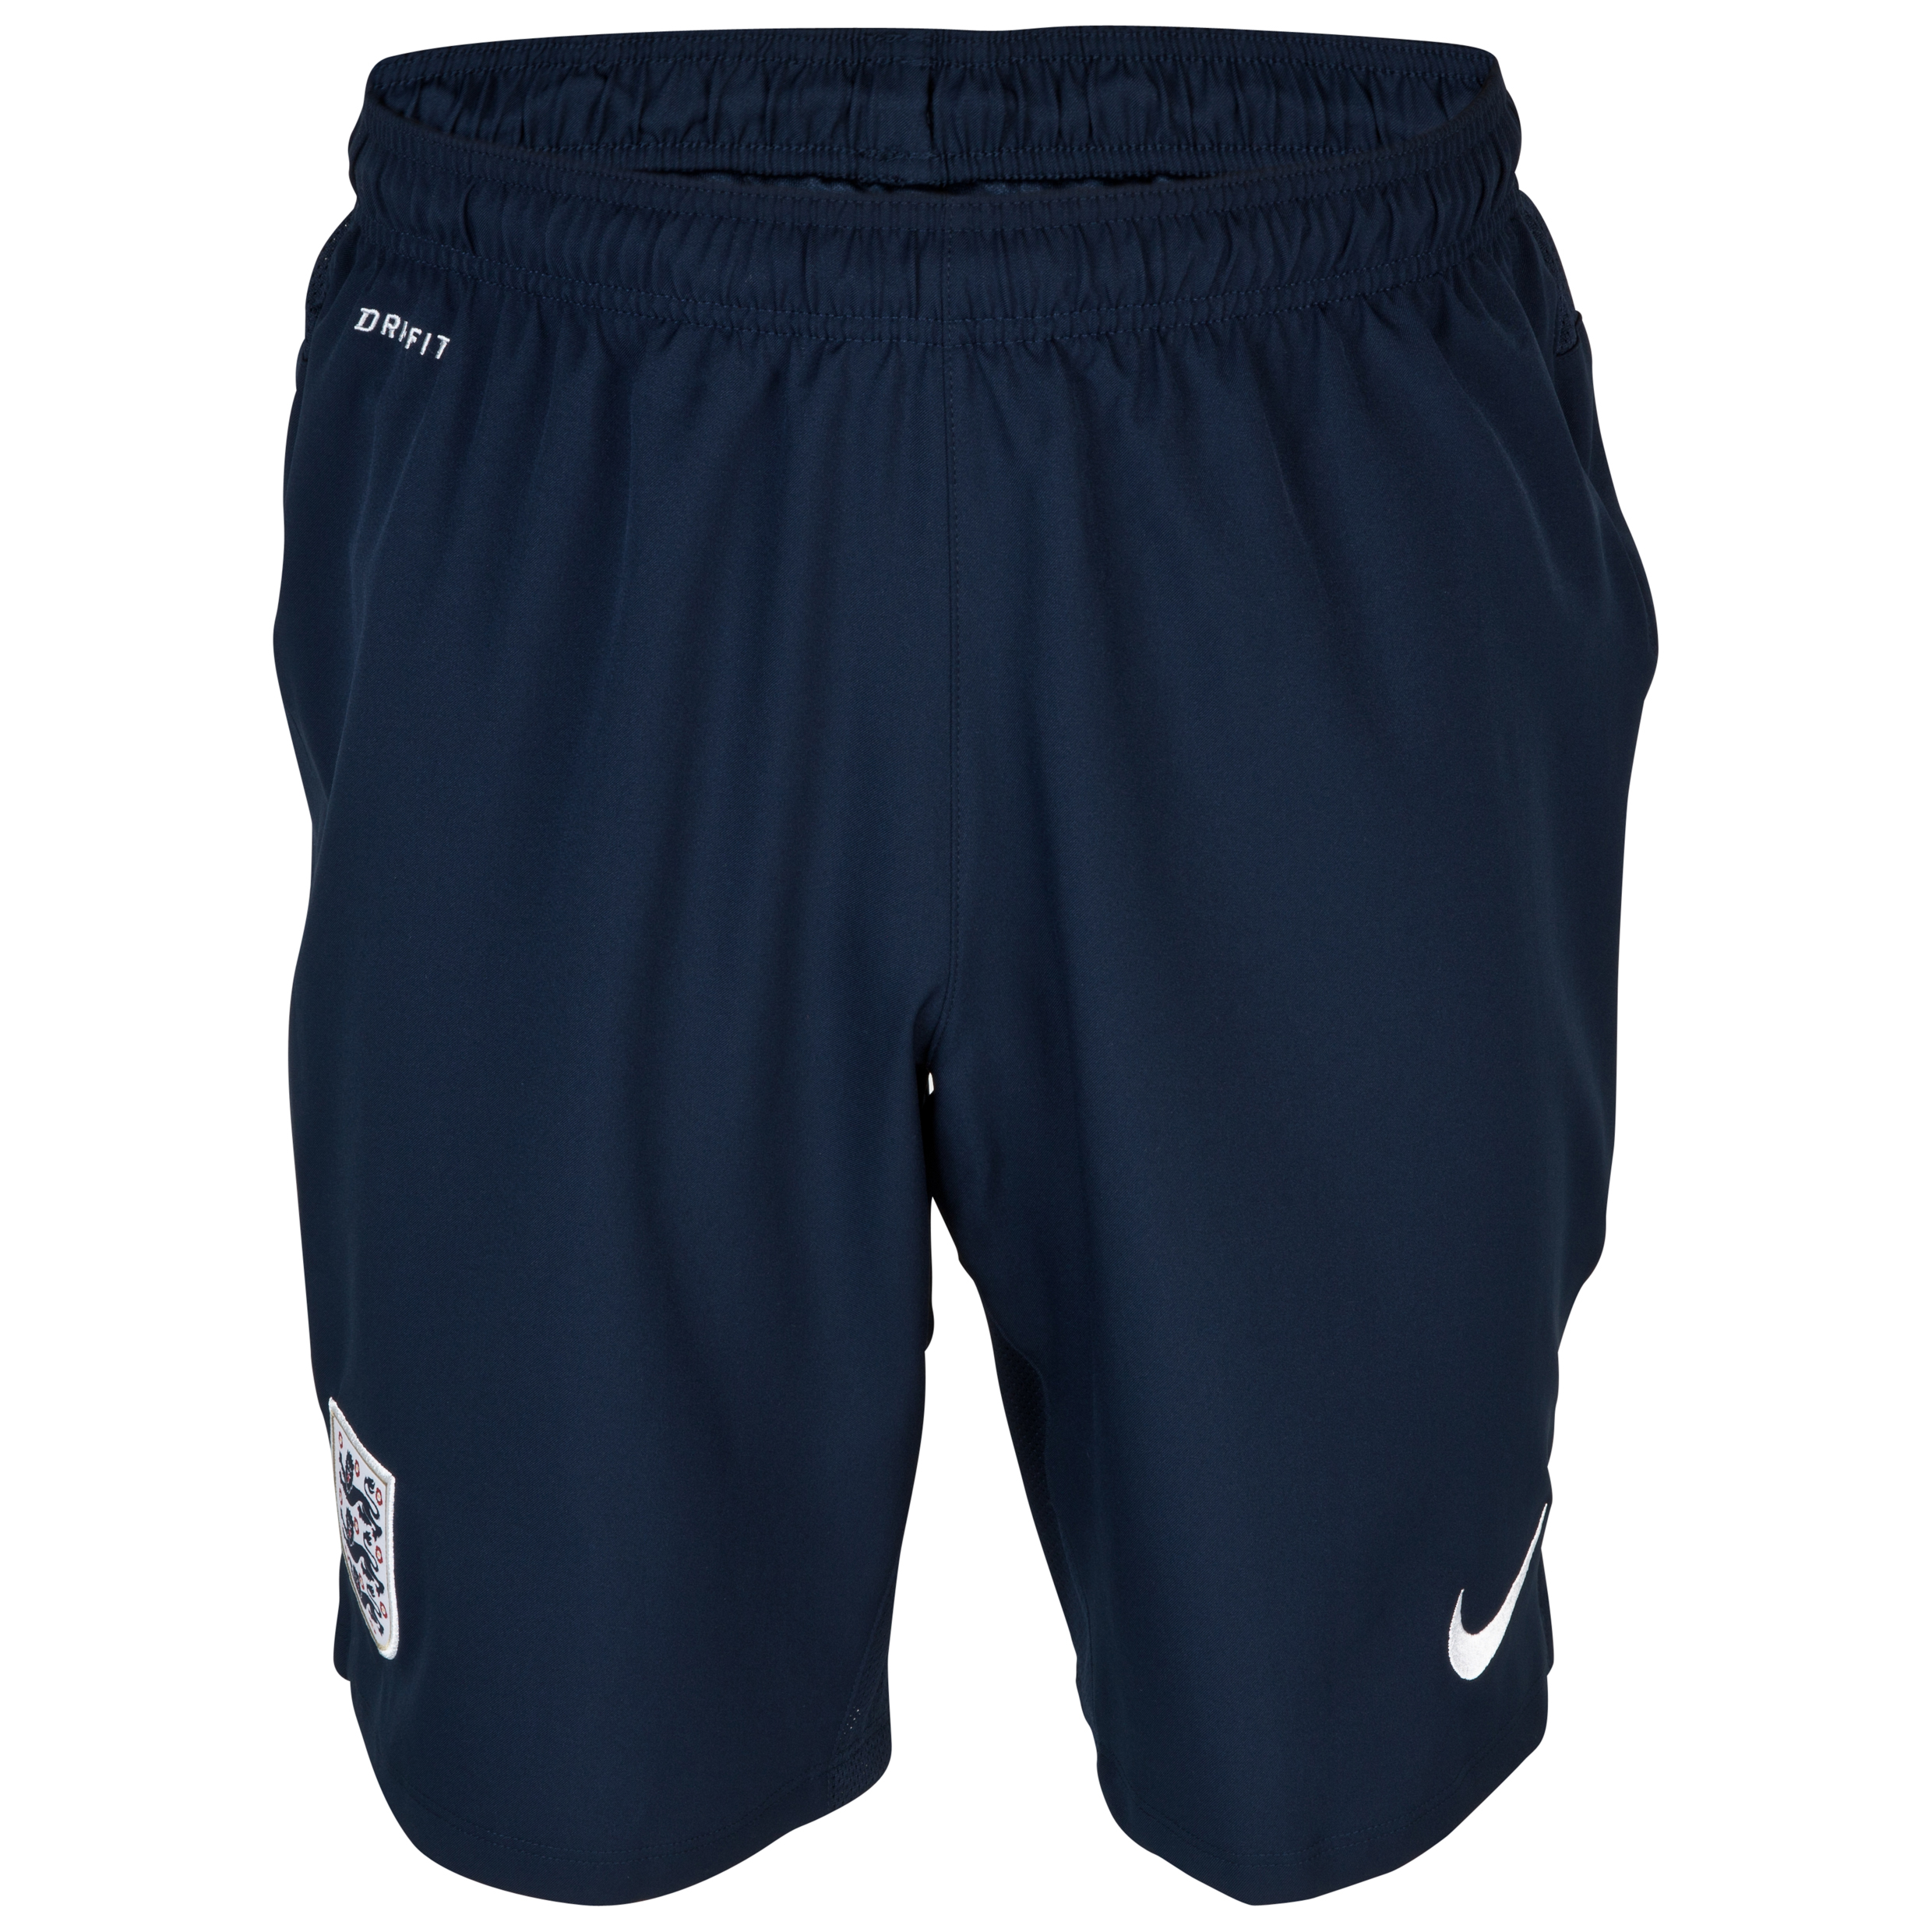 England Home Short 2013/14 - Mens Navy